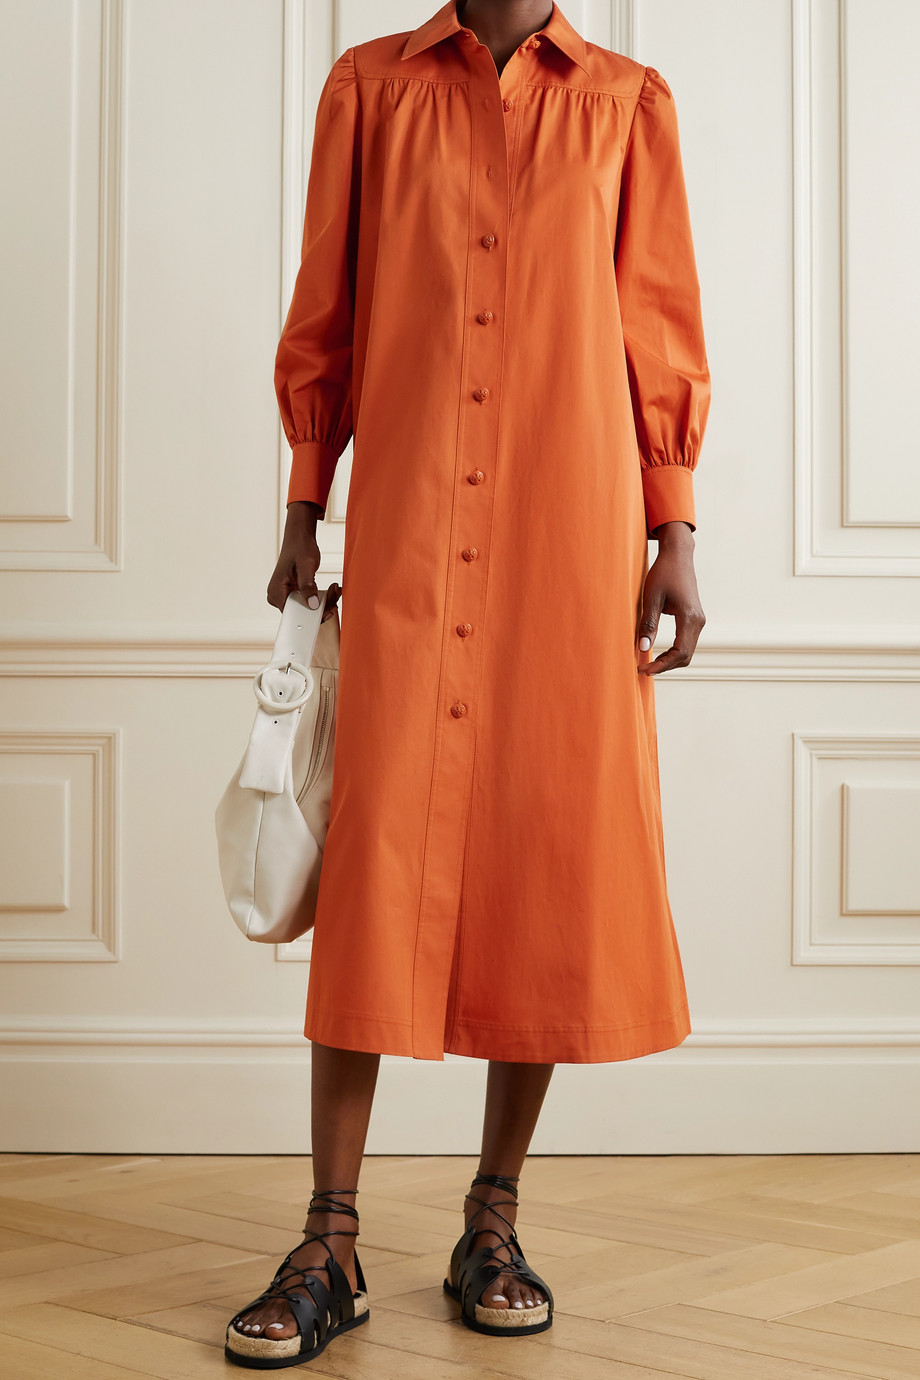 TORY BURCH Artist belted cotton shirt dress